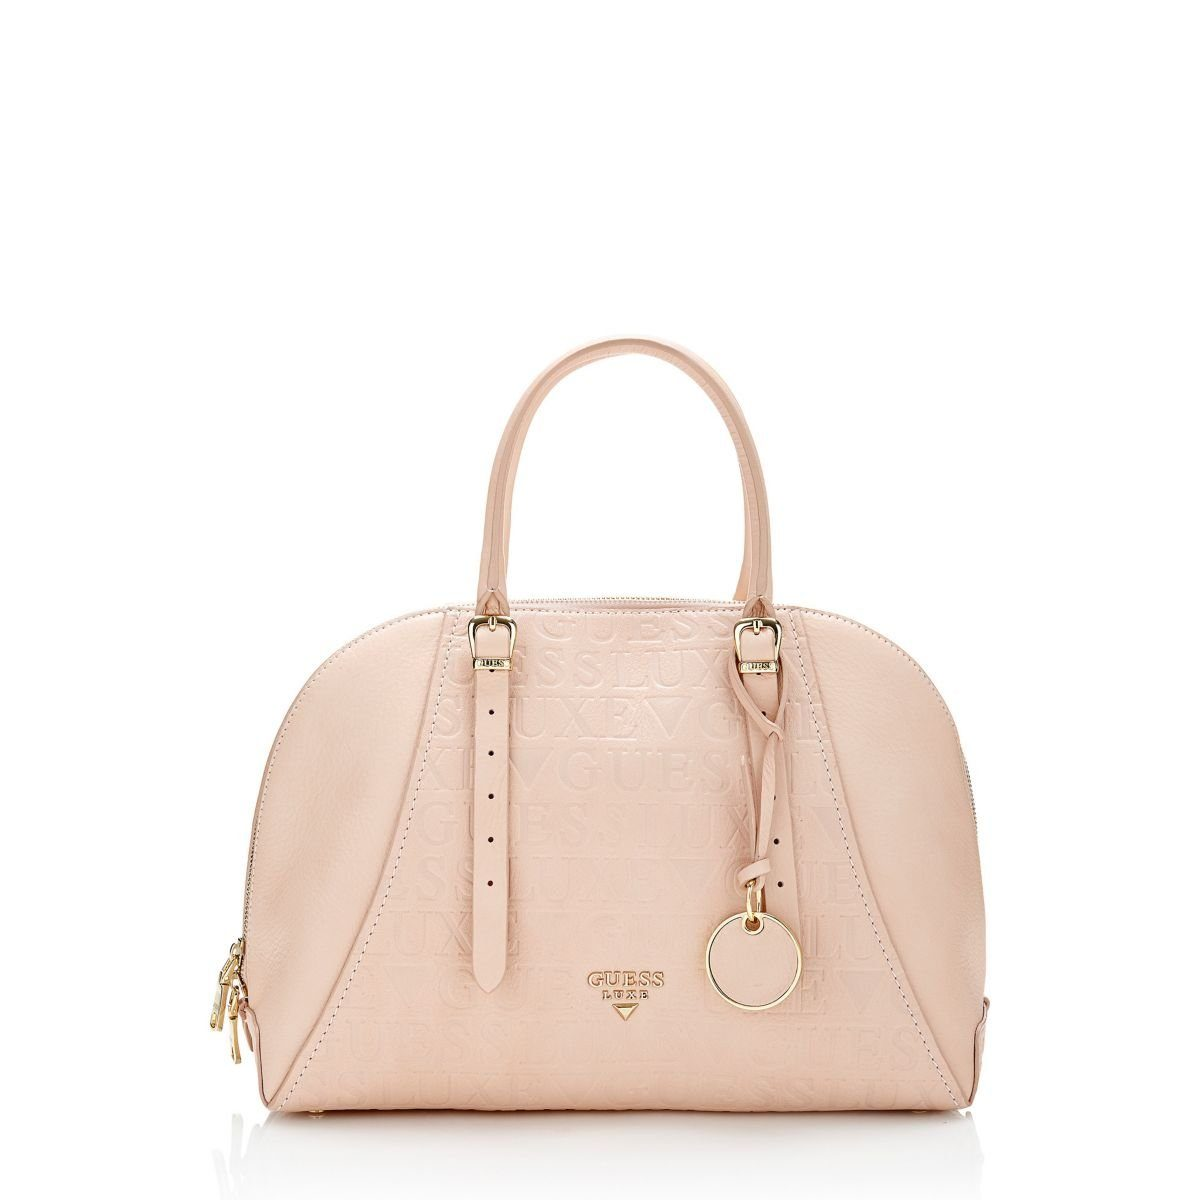 Guess BAULETTO-TASCHE LADY LUXE AUS LEDER